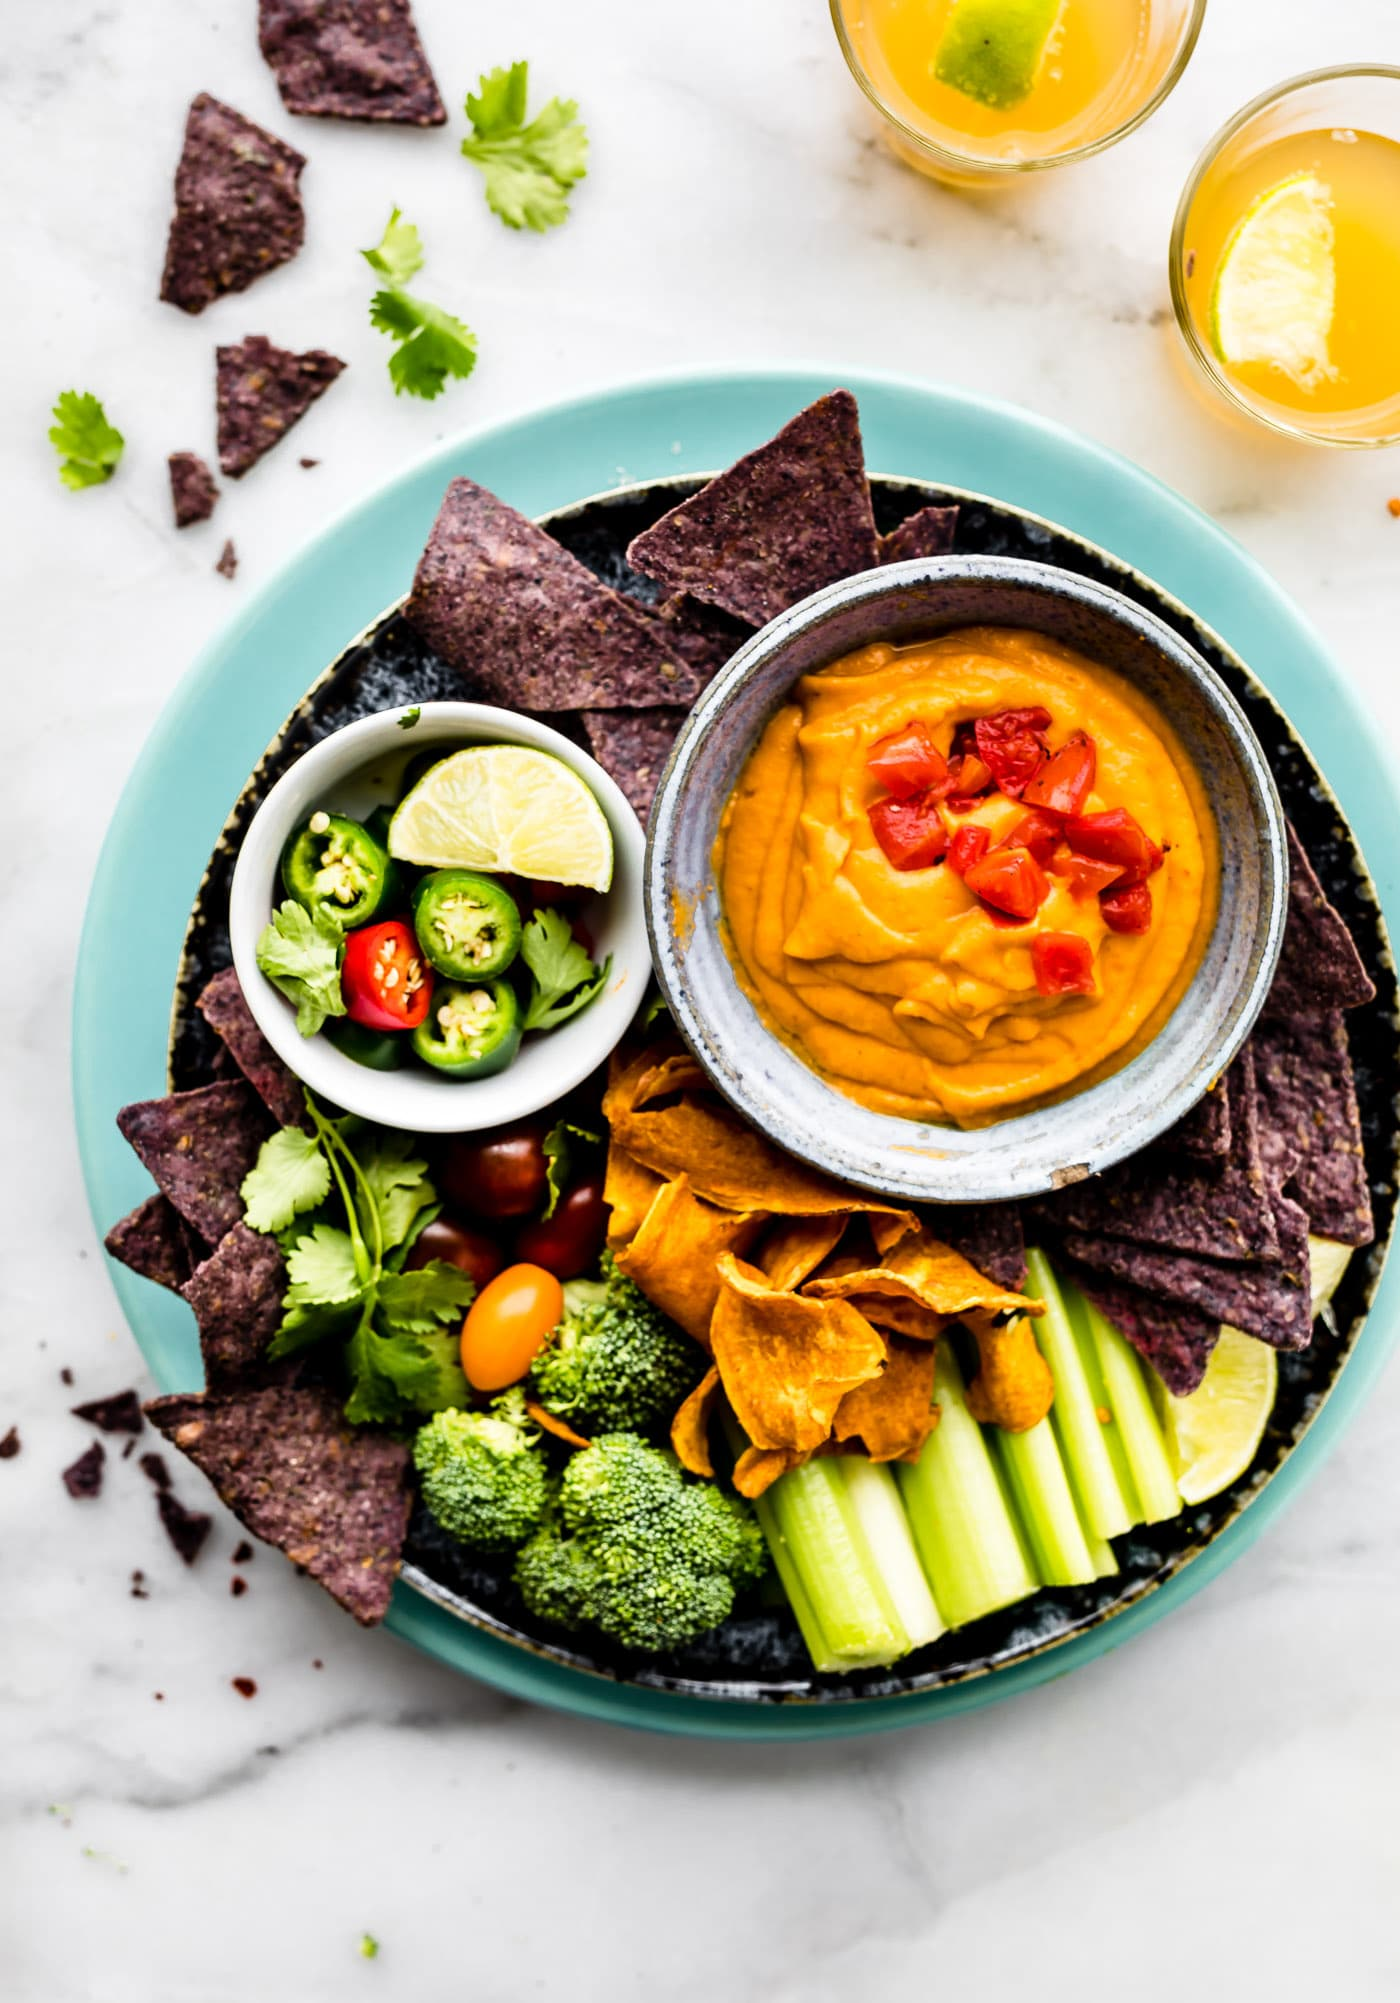 Vegan Salsa Con Queso on a platter with raw vegetables for dipping